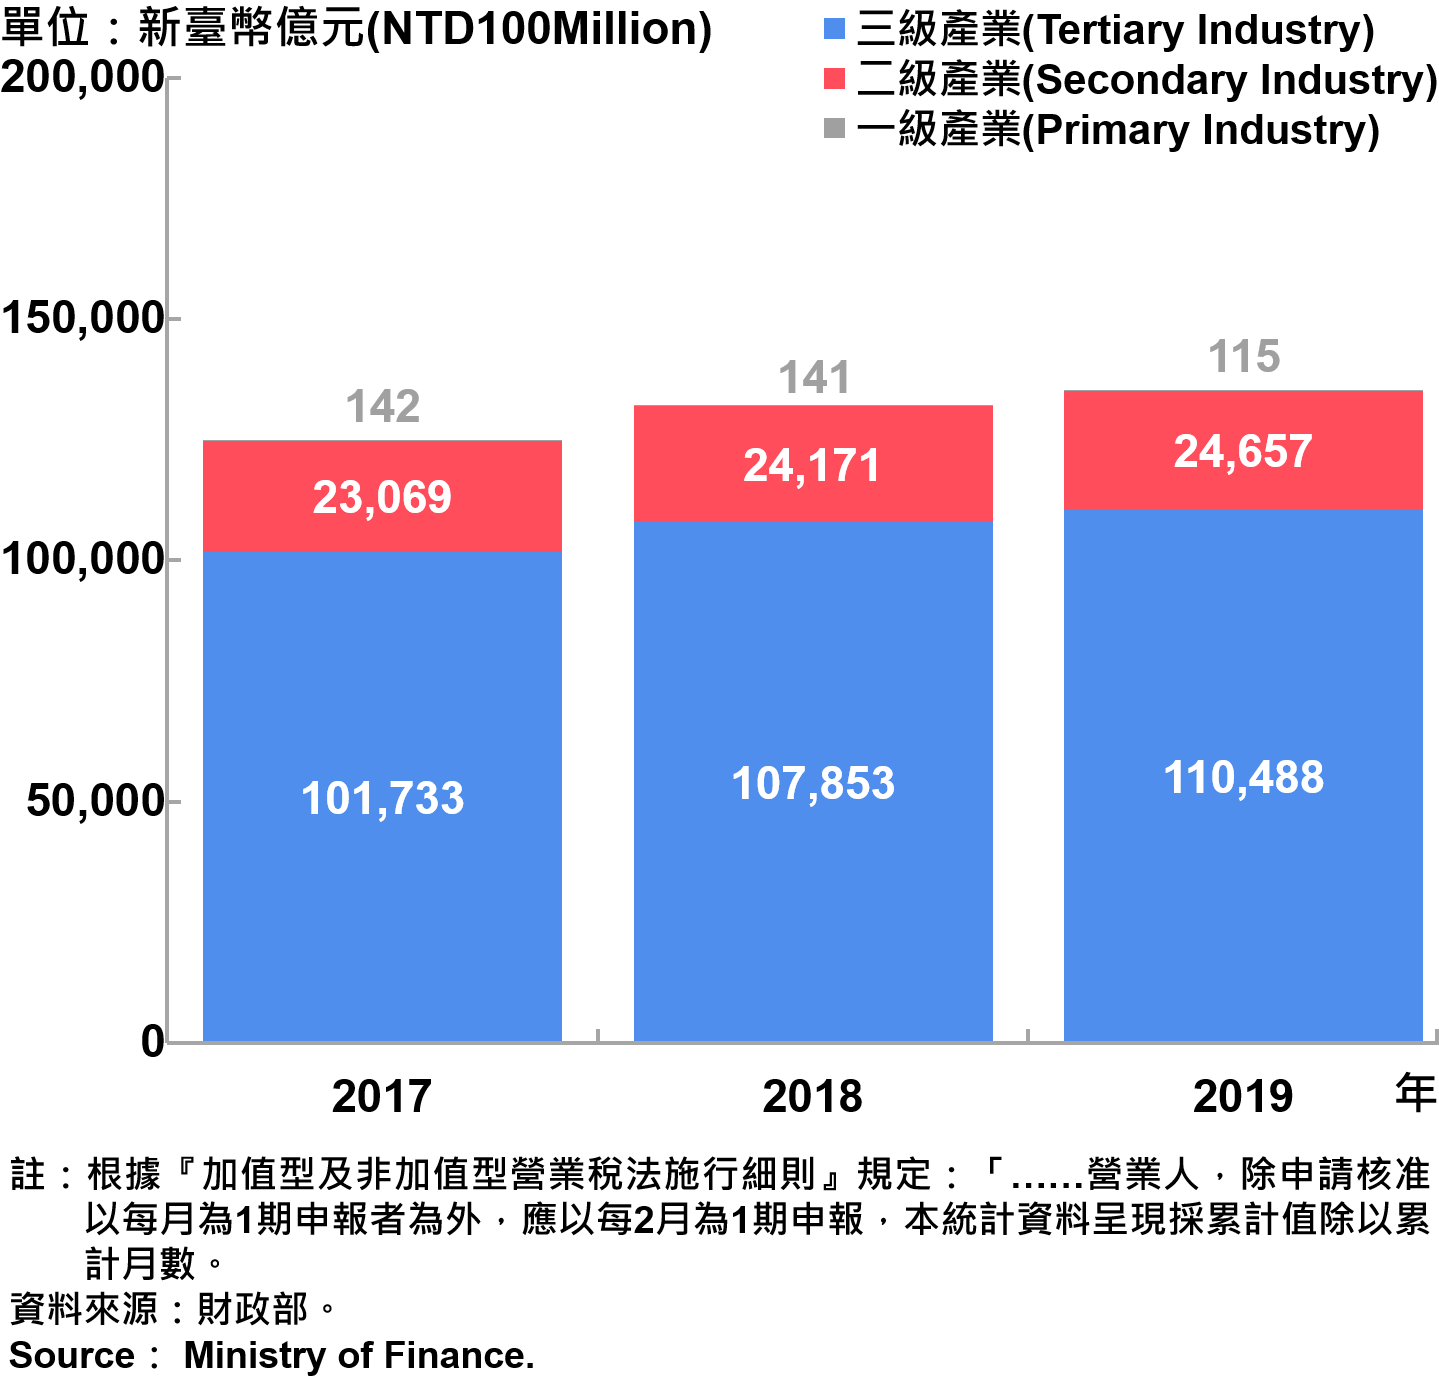 臺北市一二三級產業銷售額—2019 Sales of Primary , Secondary and Tertiary Industry in Taipei City—2019